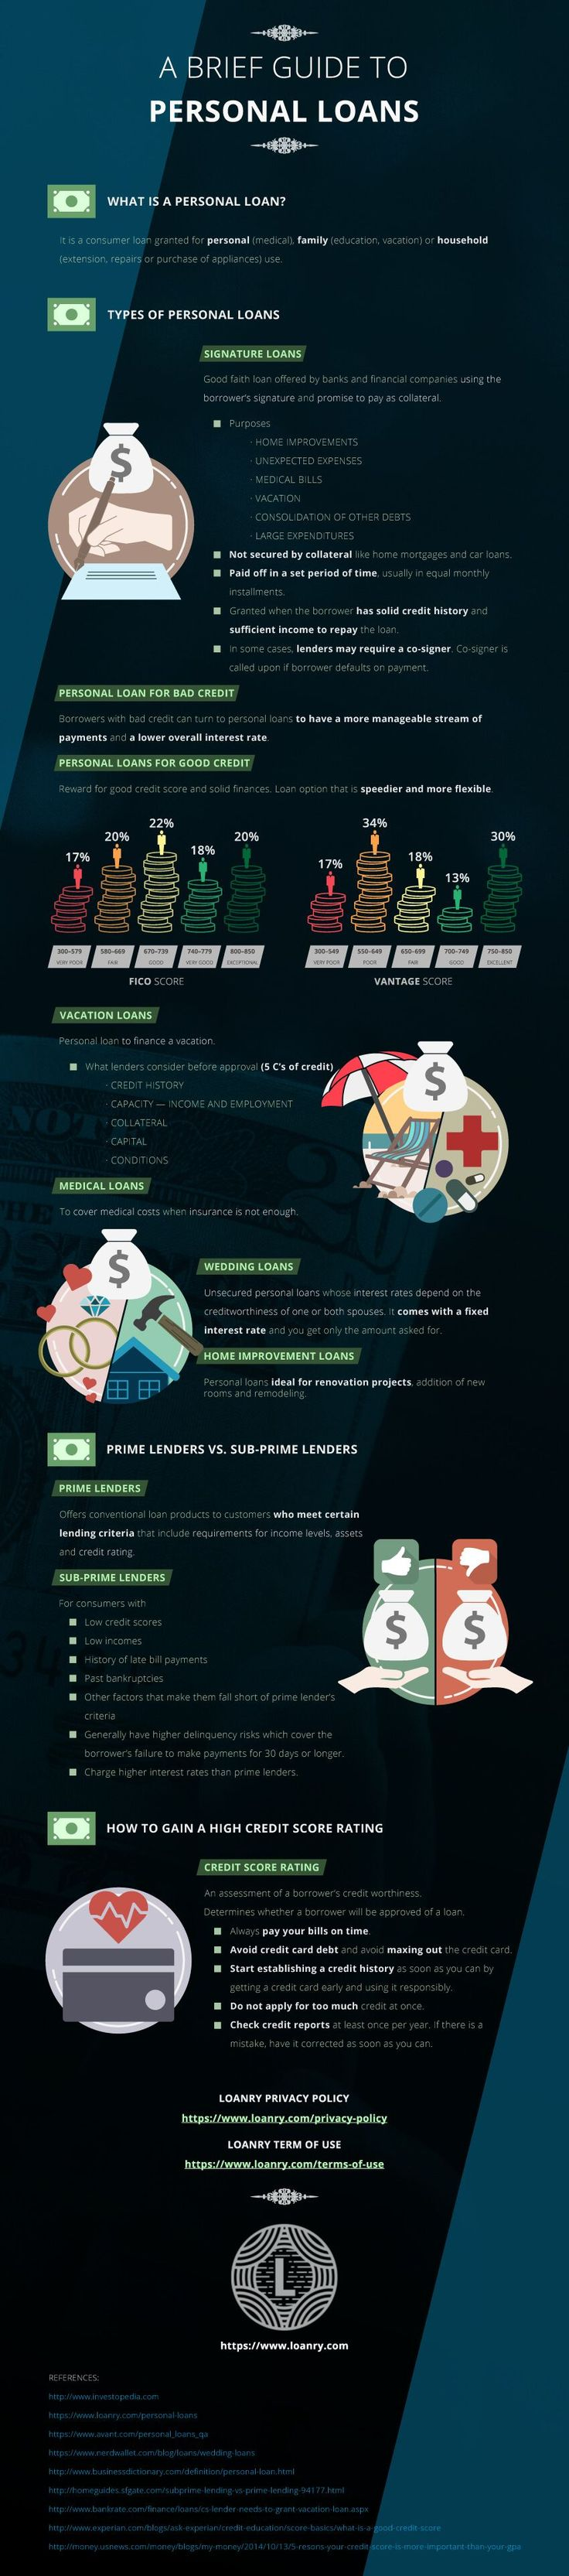 A Brief Guide to Personal Loans - A personal loan is a consumer loan granted for personal (medical), family (education, vacation) or household (extension, repairs or purchase of appliances) use. The types of personal loans include signature loans, personal loan for bad credit, personal loans for good credit, vacation loans, medical loans, wedding loans, and home improvement loans. #homeimprovementloans,